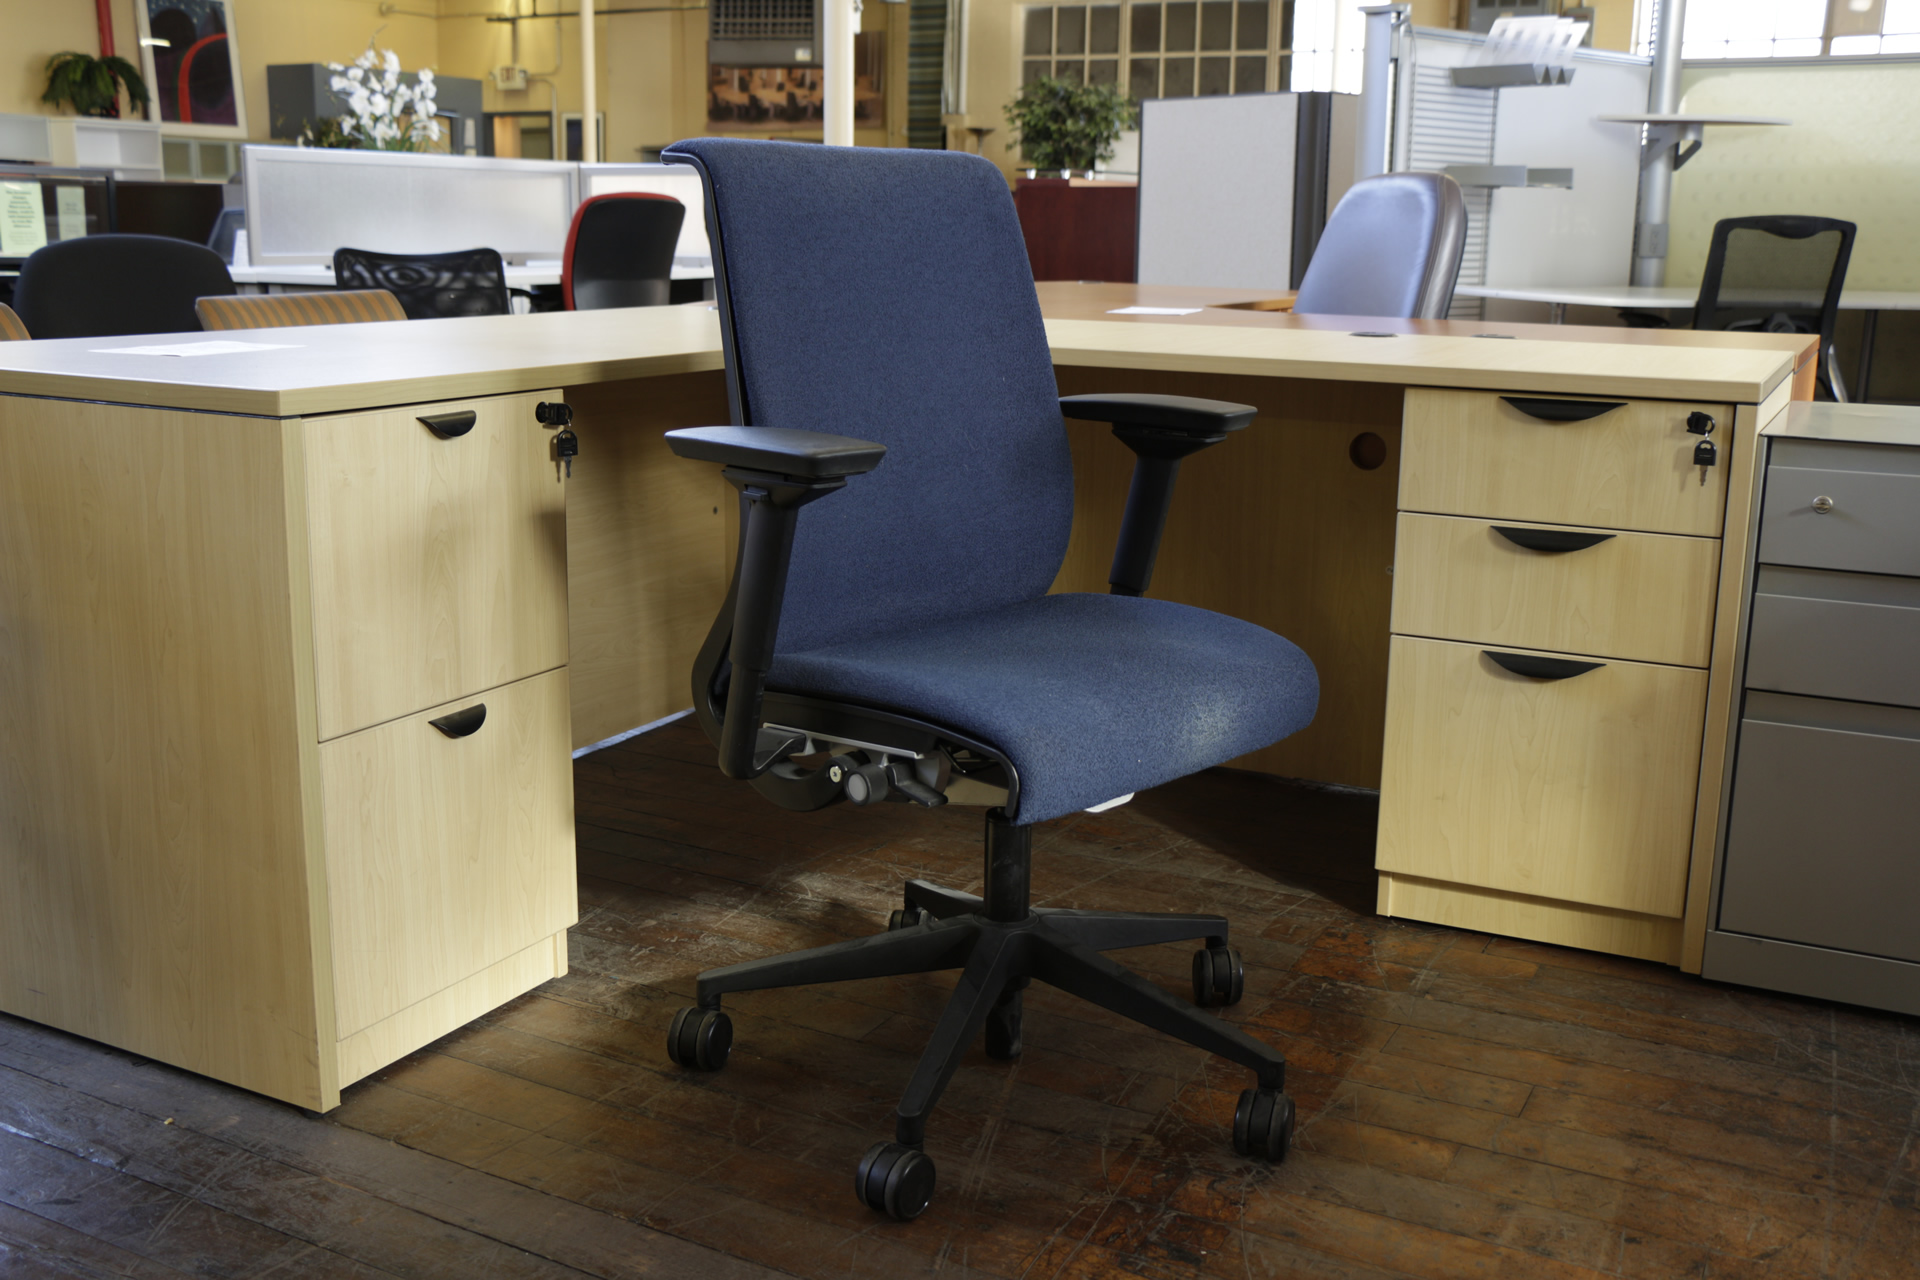 peartreeofficefurniture_peartreeofficefurniture_mg_1825.jpg